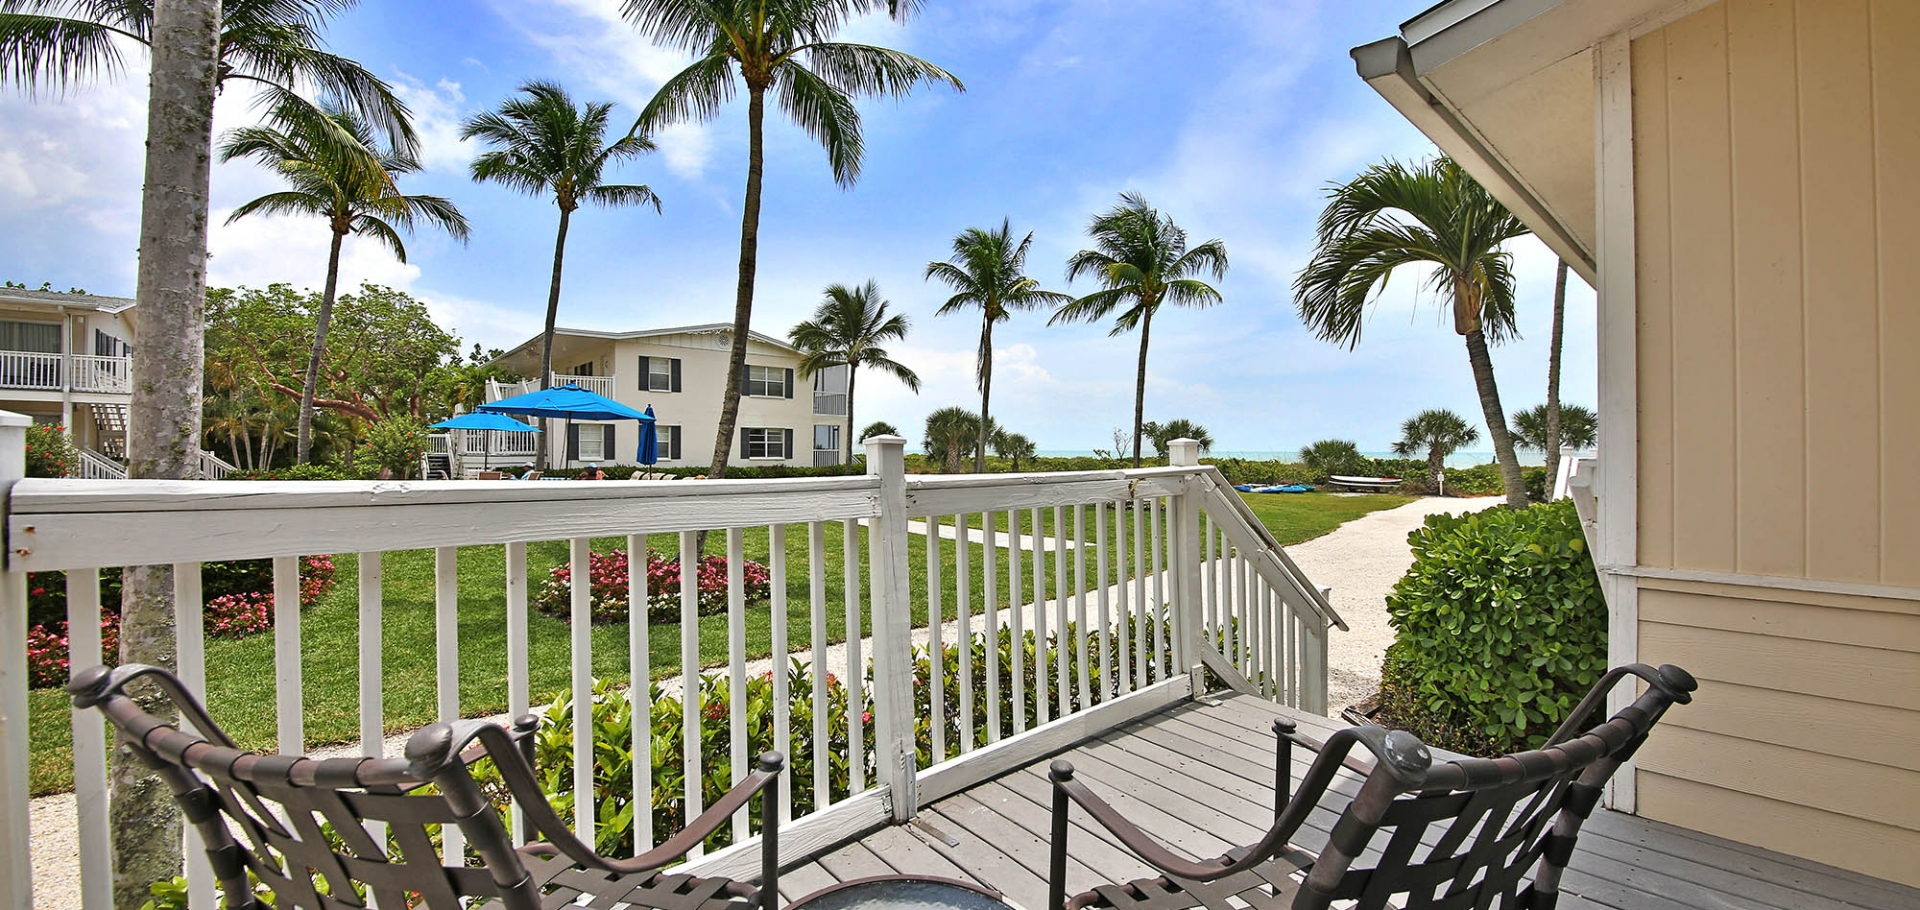 Sanibel Seaside Inn Porch